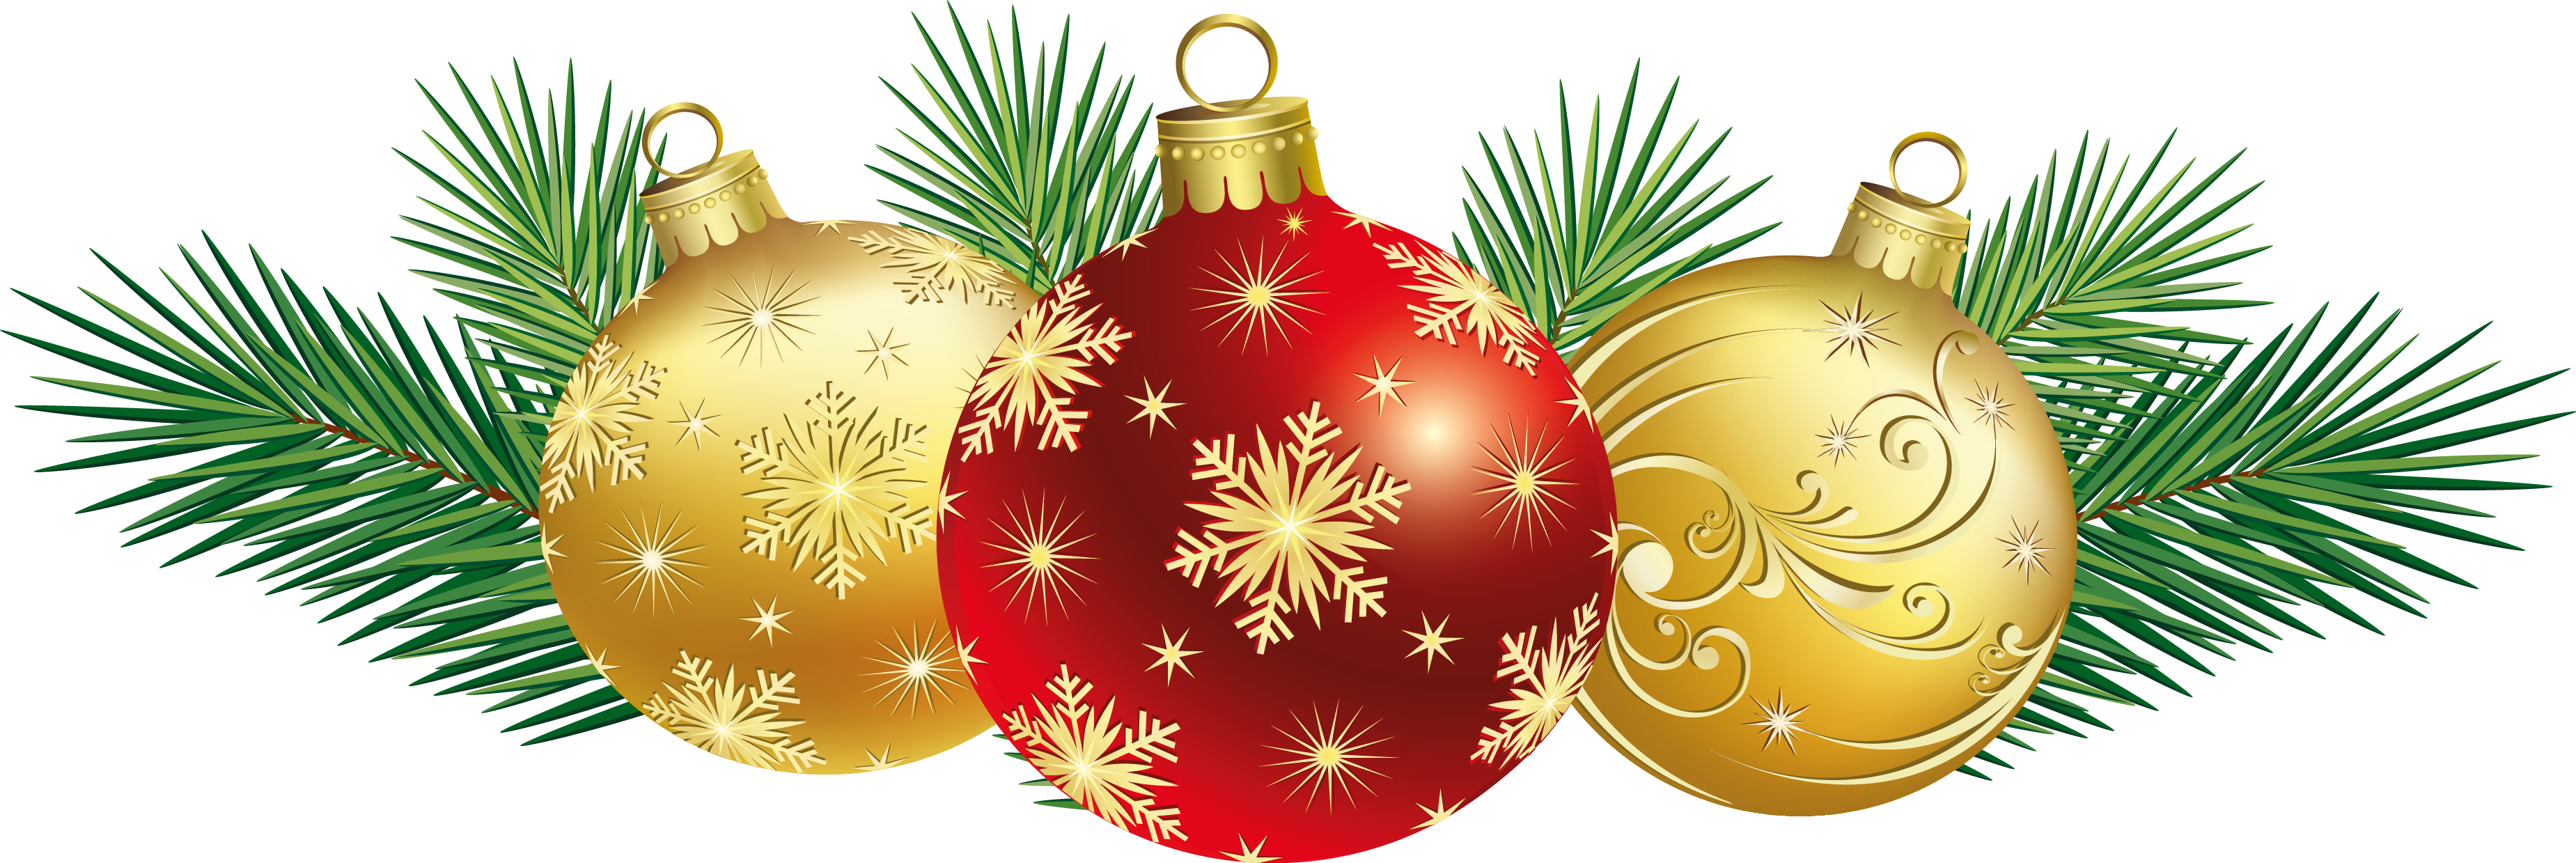 Christmas Decorations Clip Art